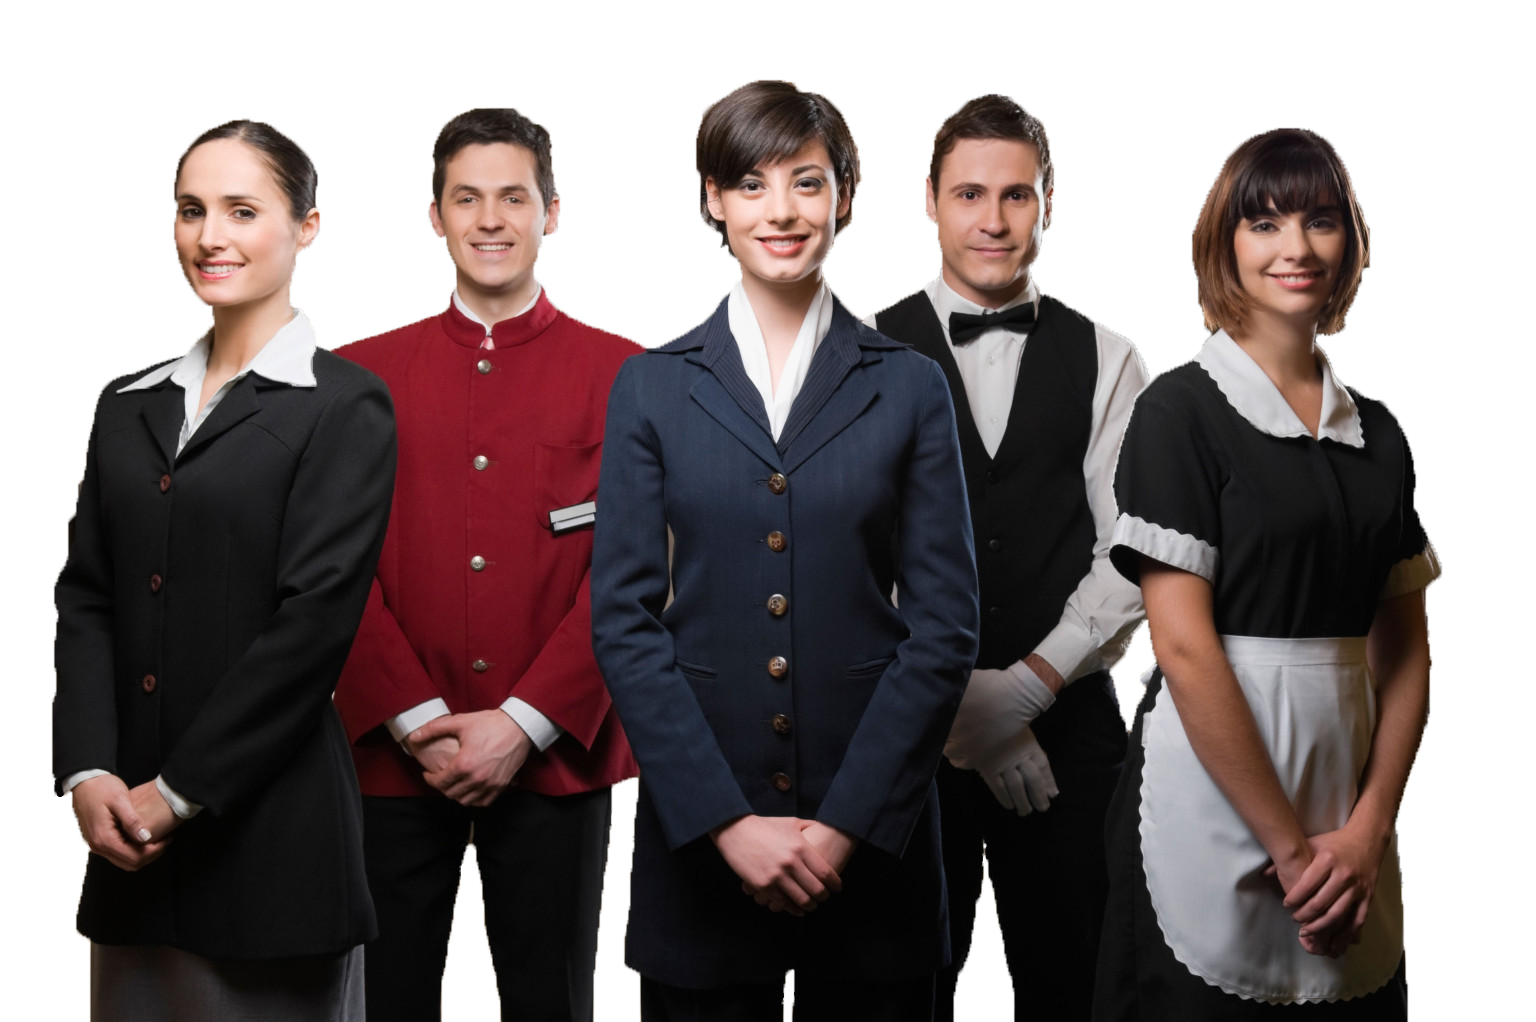 Hotel staff png. Midwest property management thg